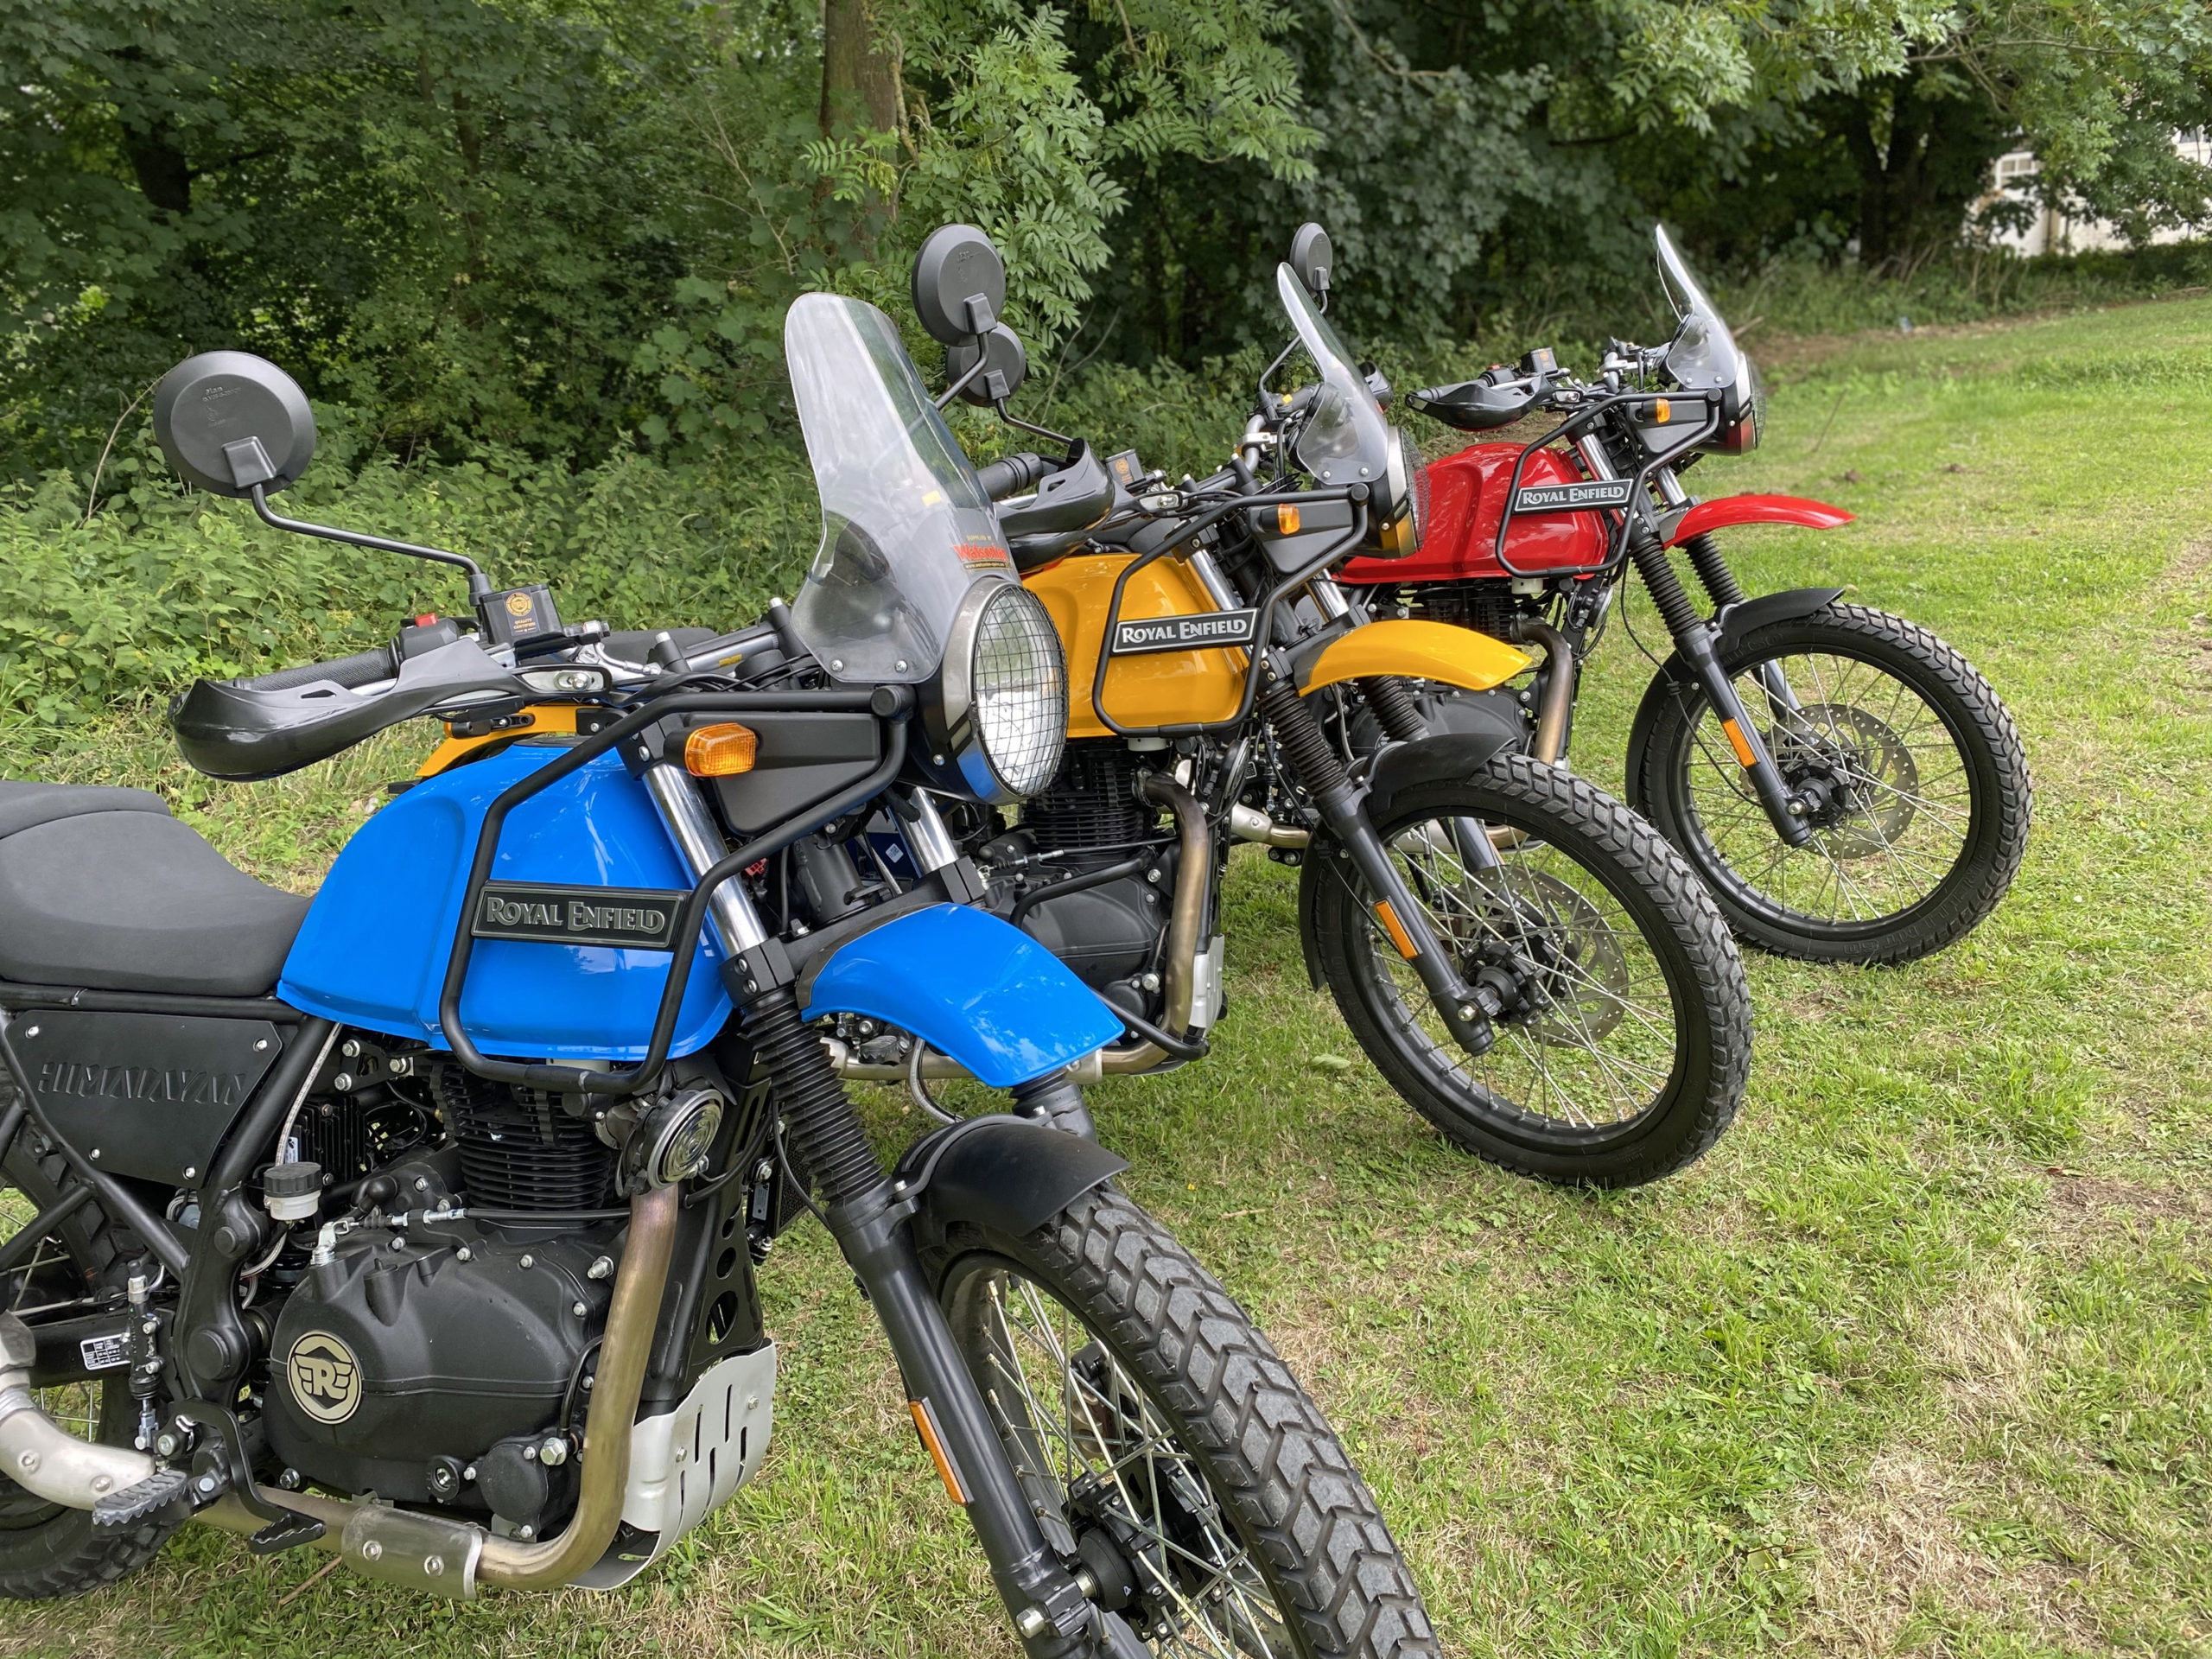 Royal_enfield_himalayan_red_blue_yellow